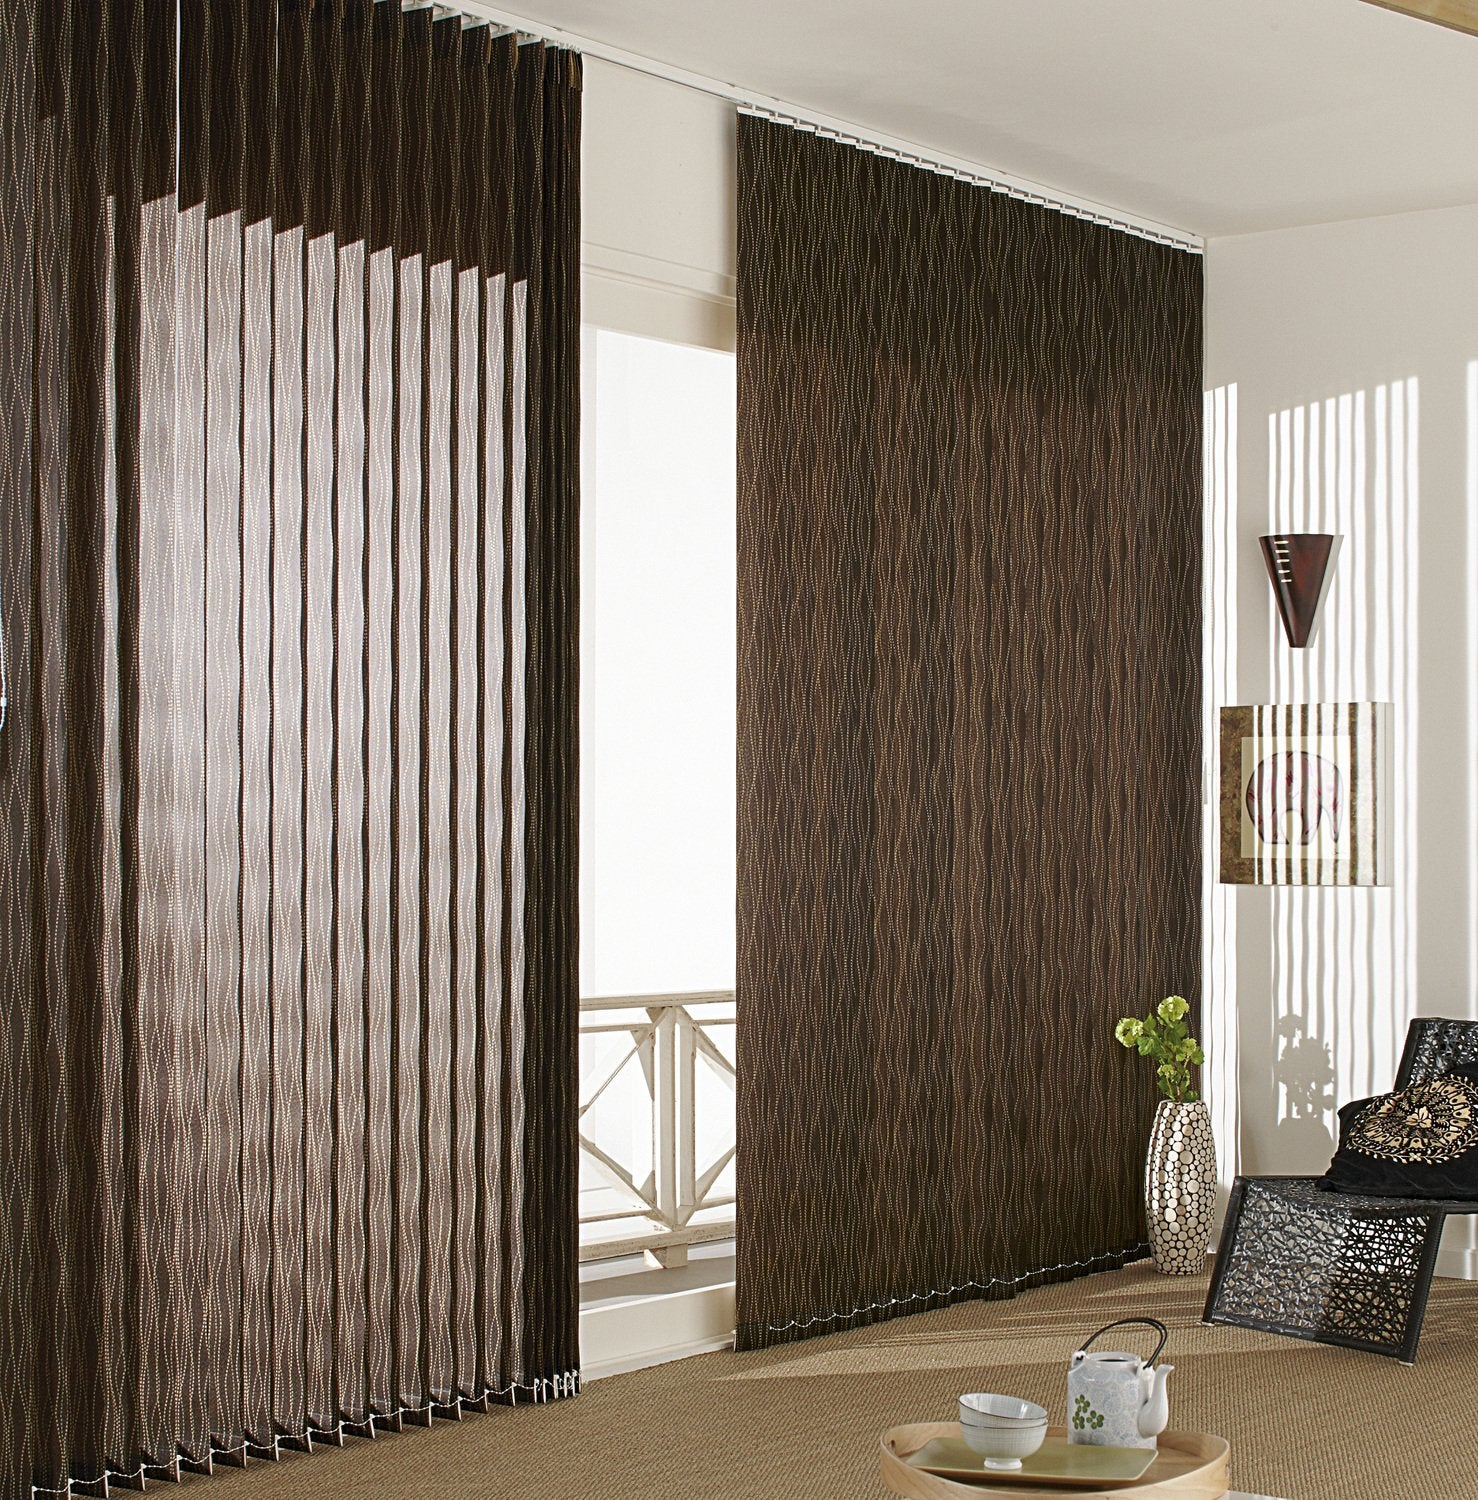 madeco store leroy merlin awesome store int rieur lamelles verticales marron leroy merlin with. Black Bedroom Furniture Sets. Home Design Ideas